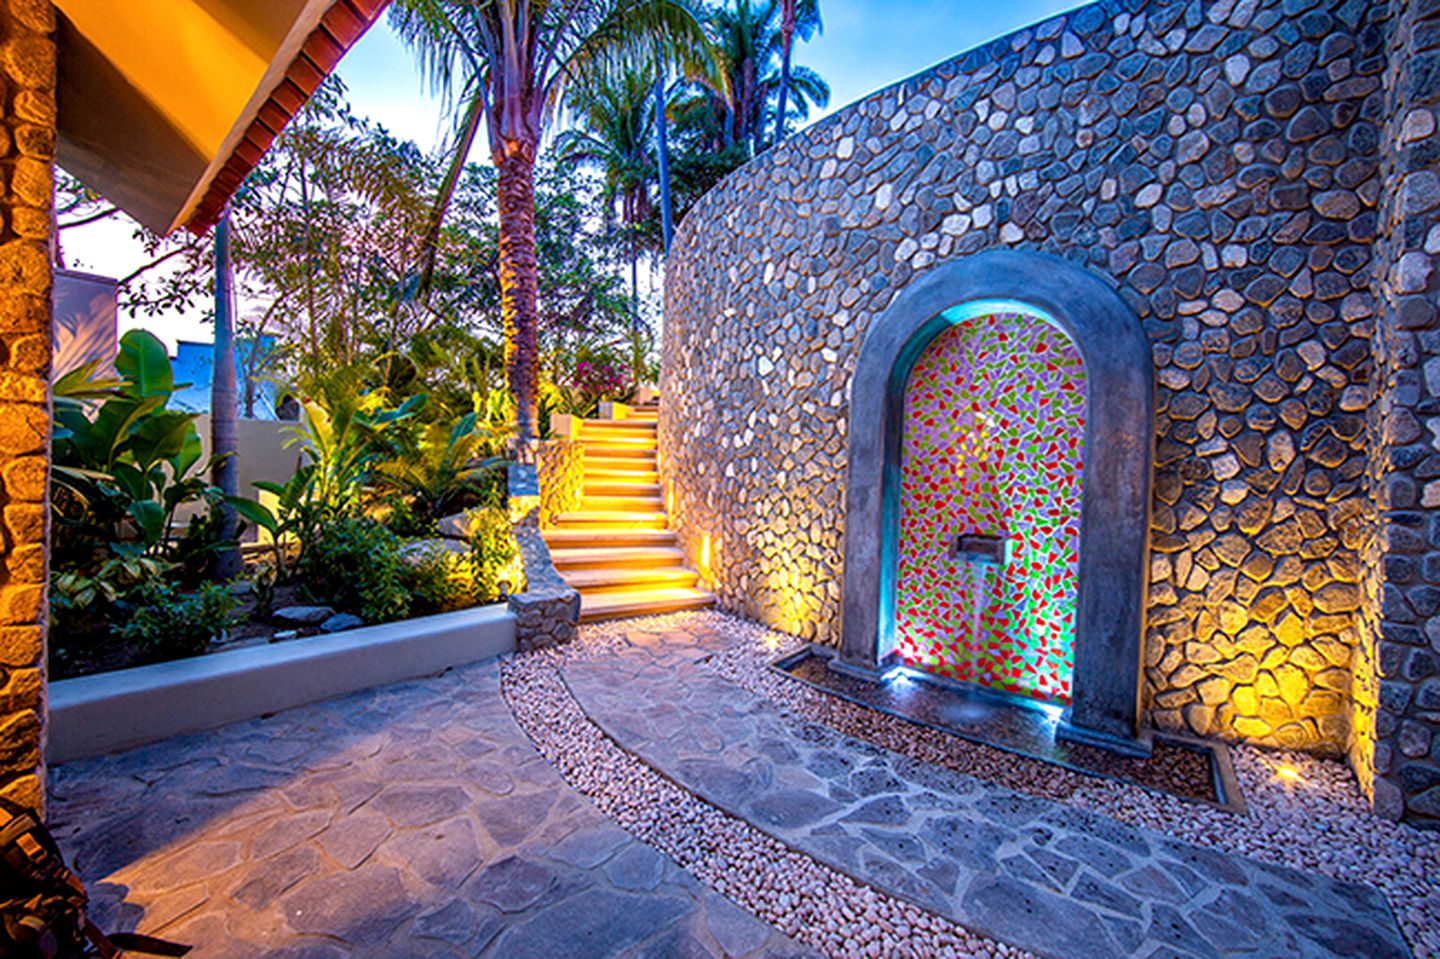 Villas (San Francisco, Nayarit, Mexico)